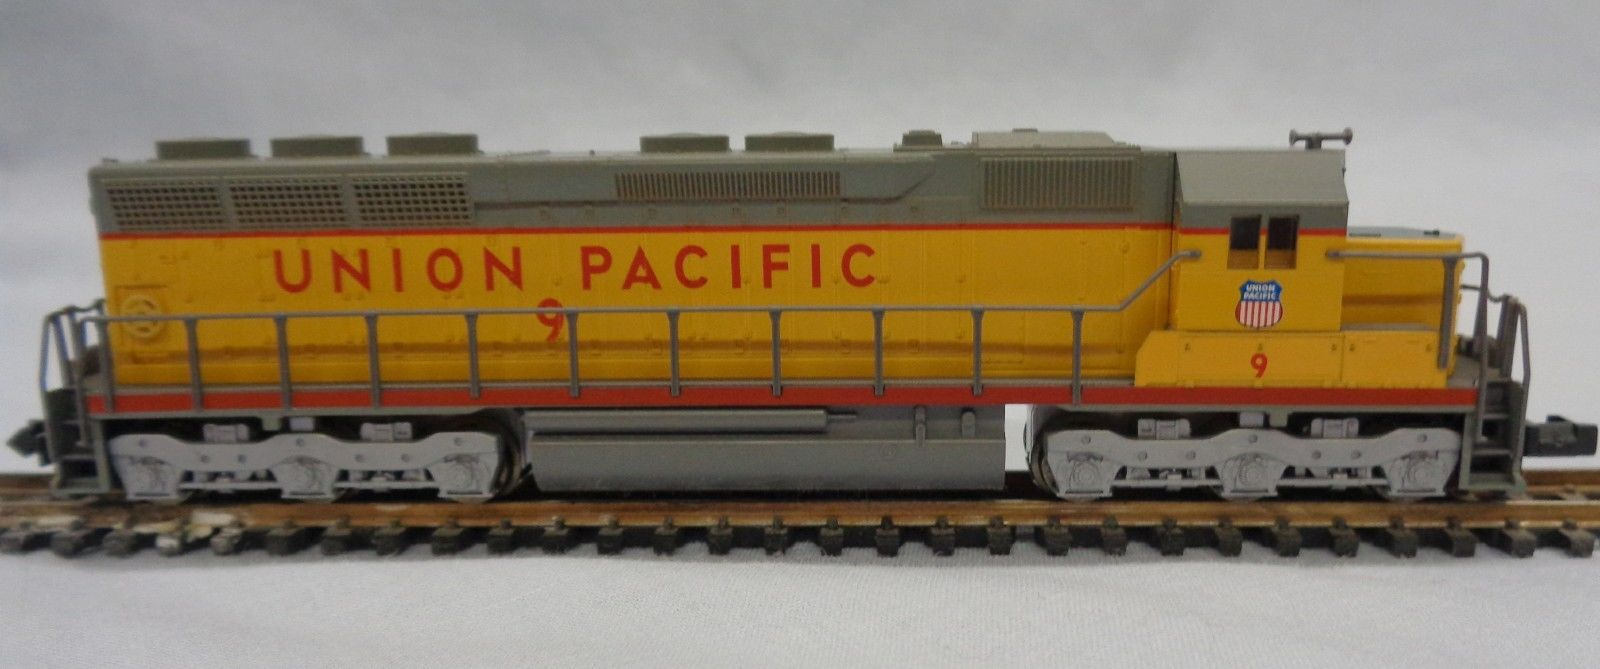 N Scale - Kato USA - 176-3119 - Locomotive, Diesel, EMD SD45 - Union Pacific - 9